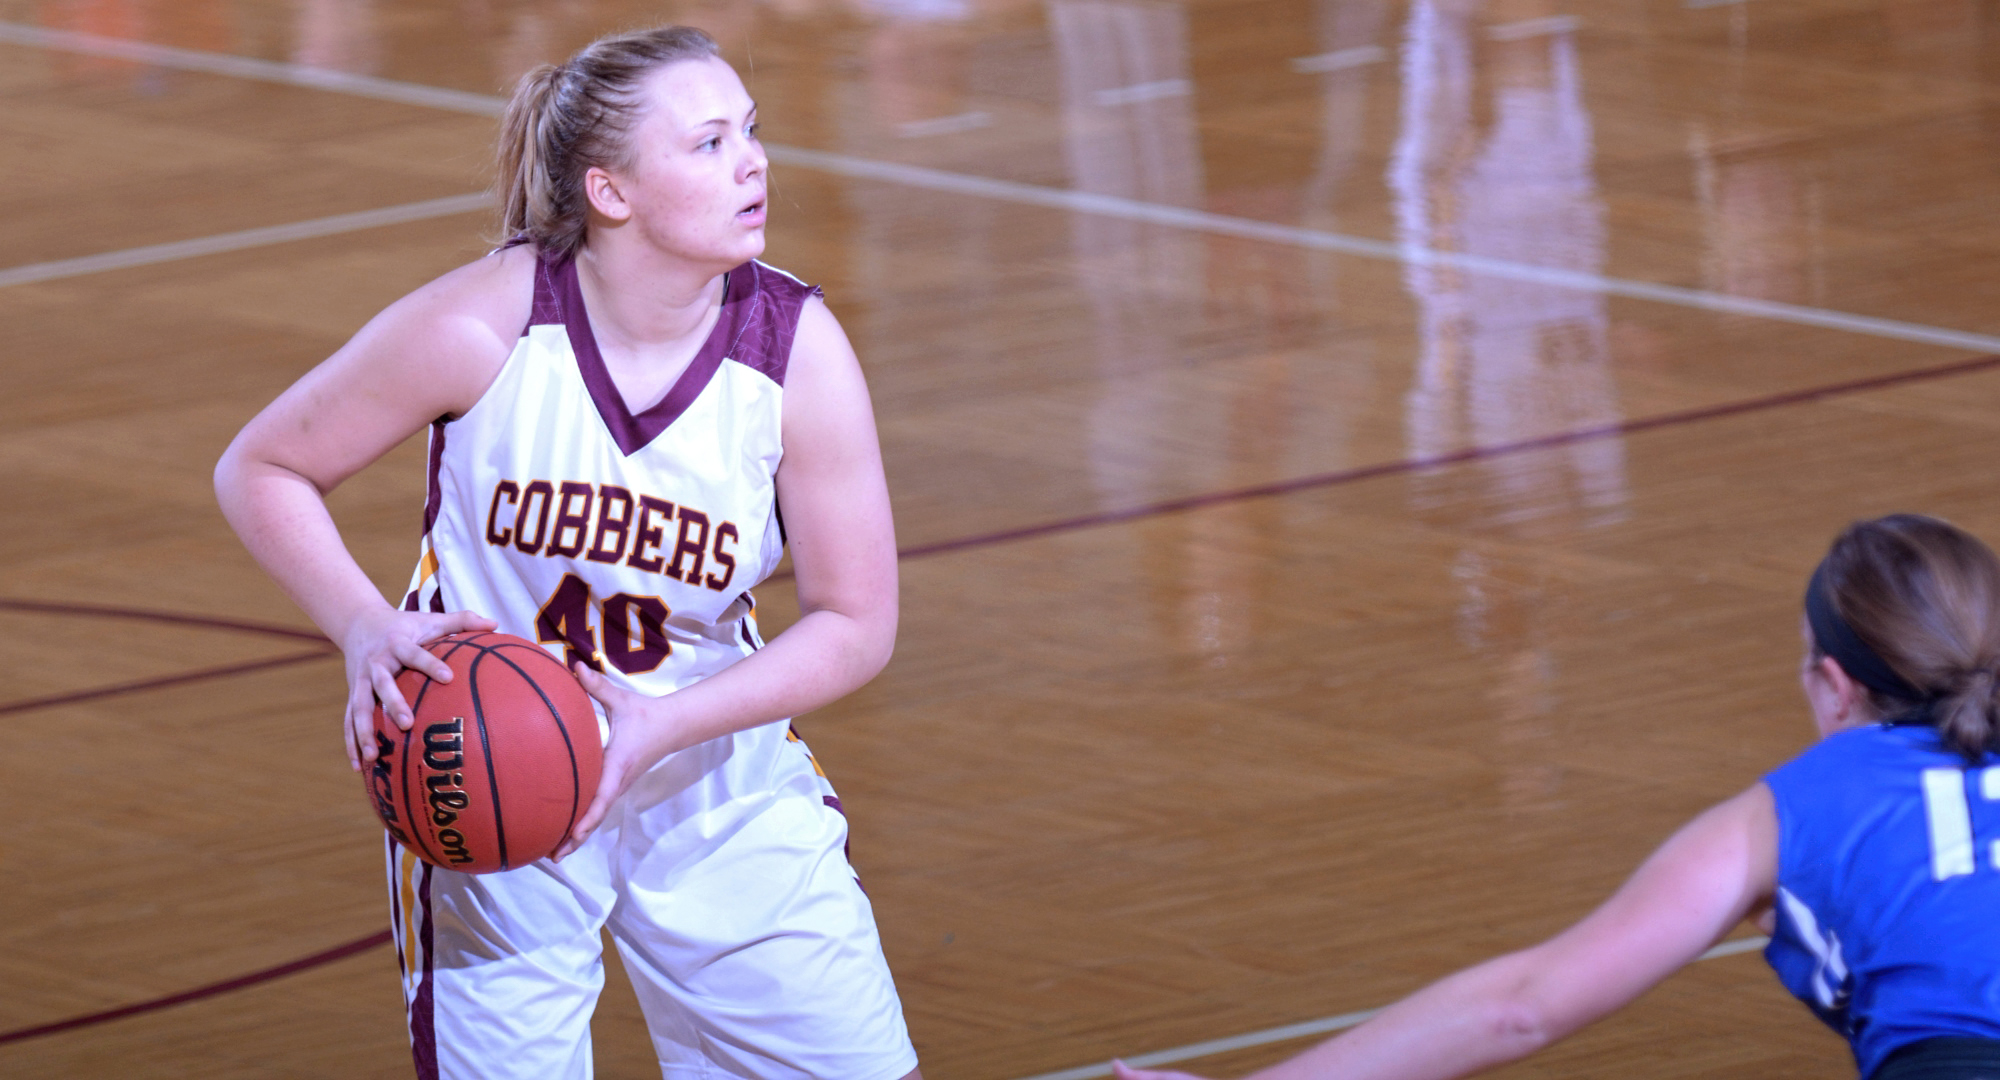 Sophomore Mira Ellefson led Concordia in scoring with 13 points in the team's conference opener at Macalester.